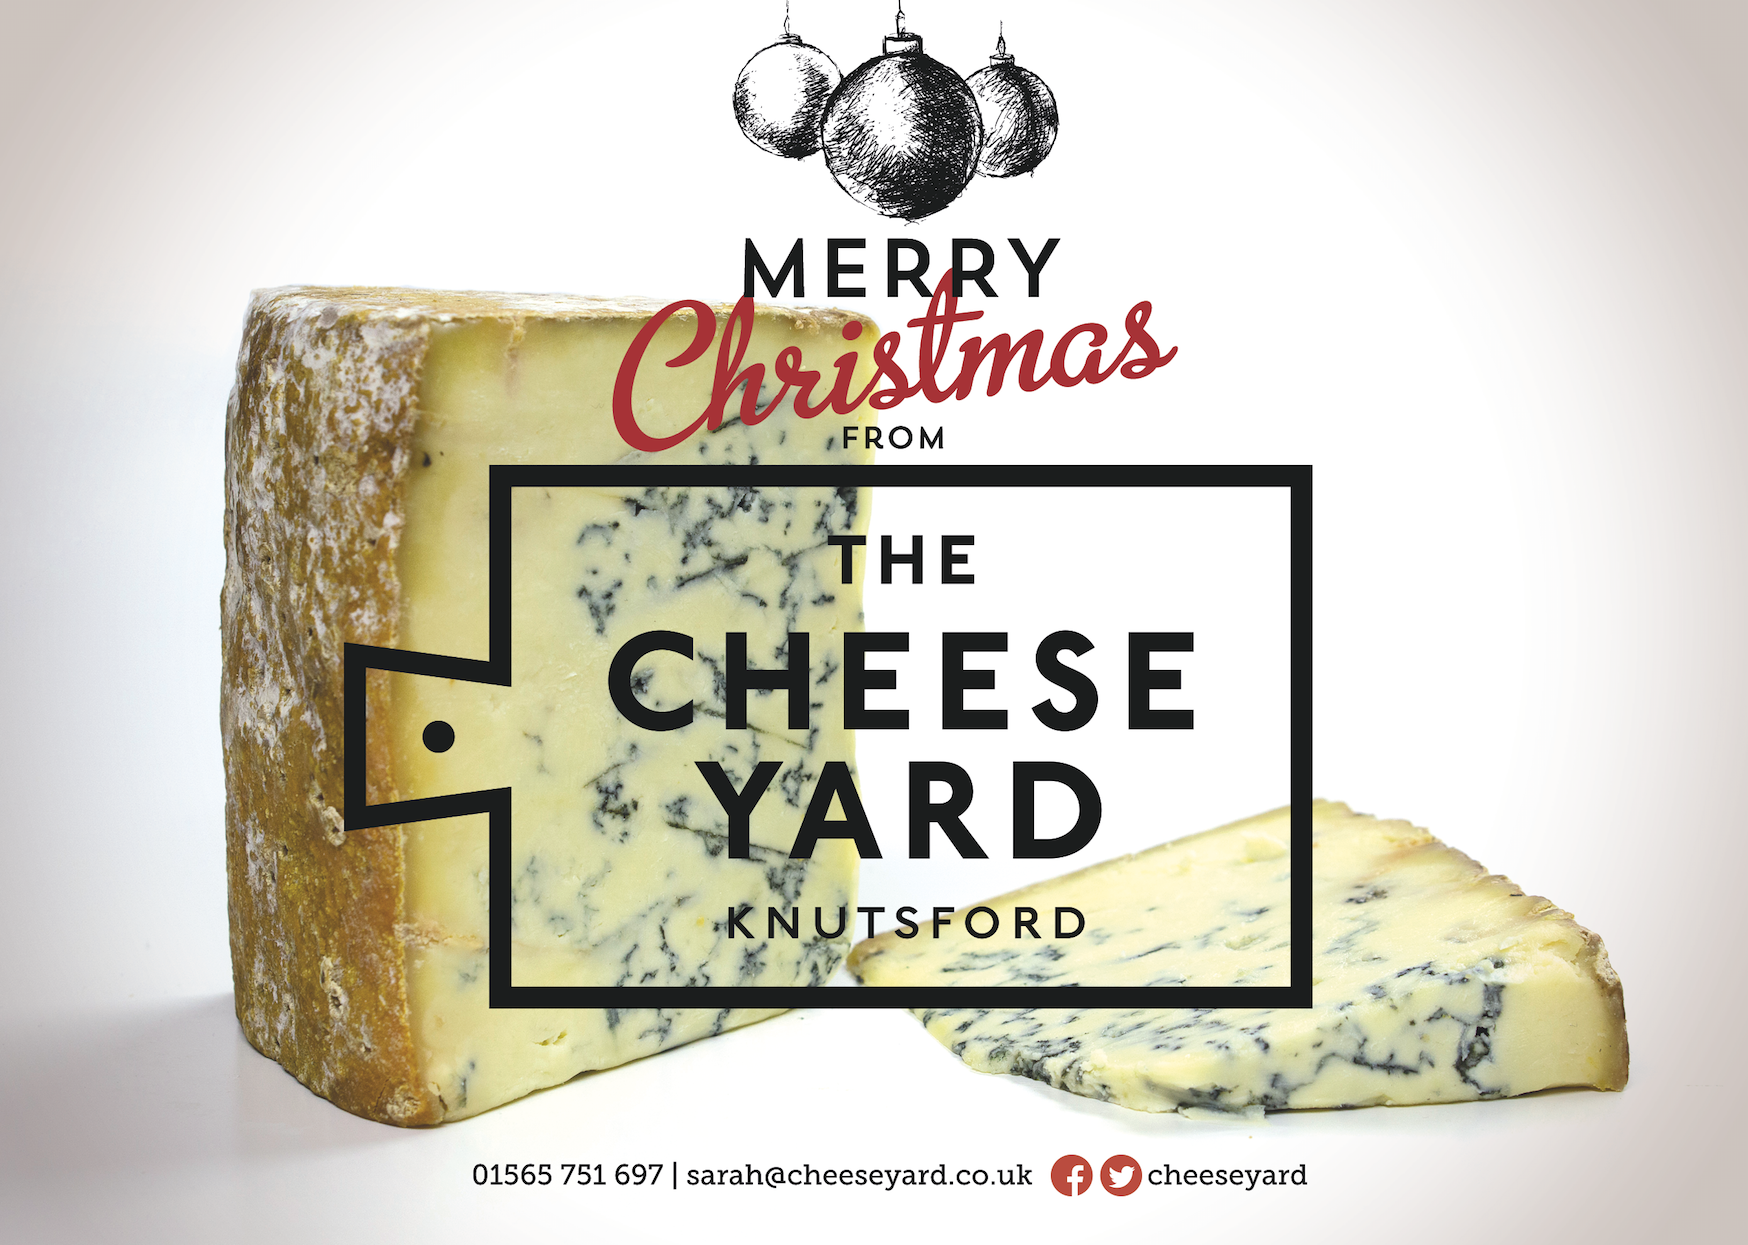 The Cheese Yard Knutsford Christmas Flyer